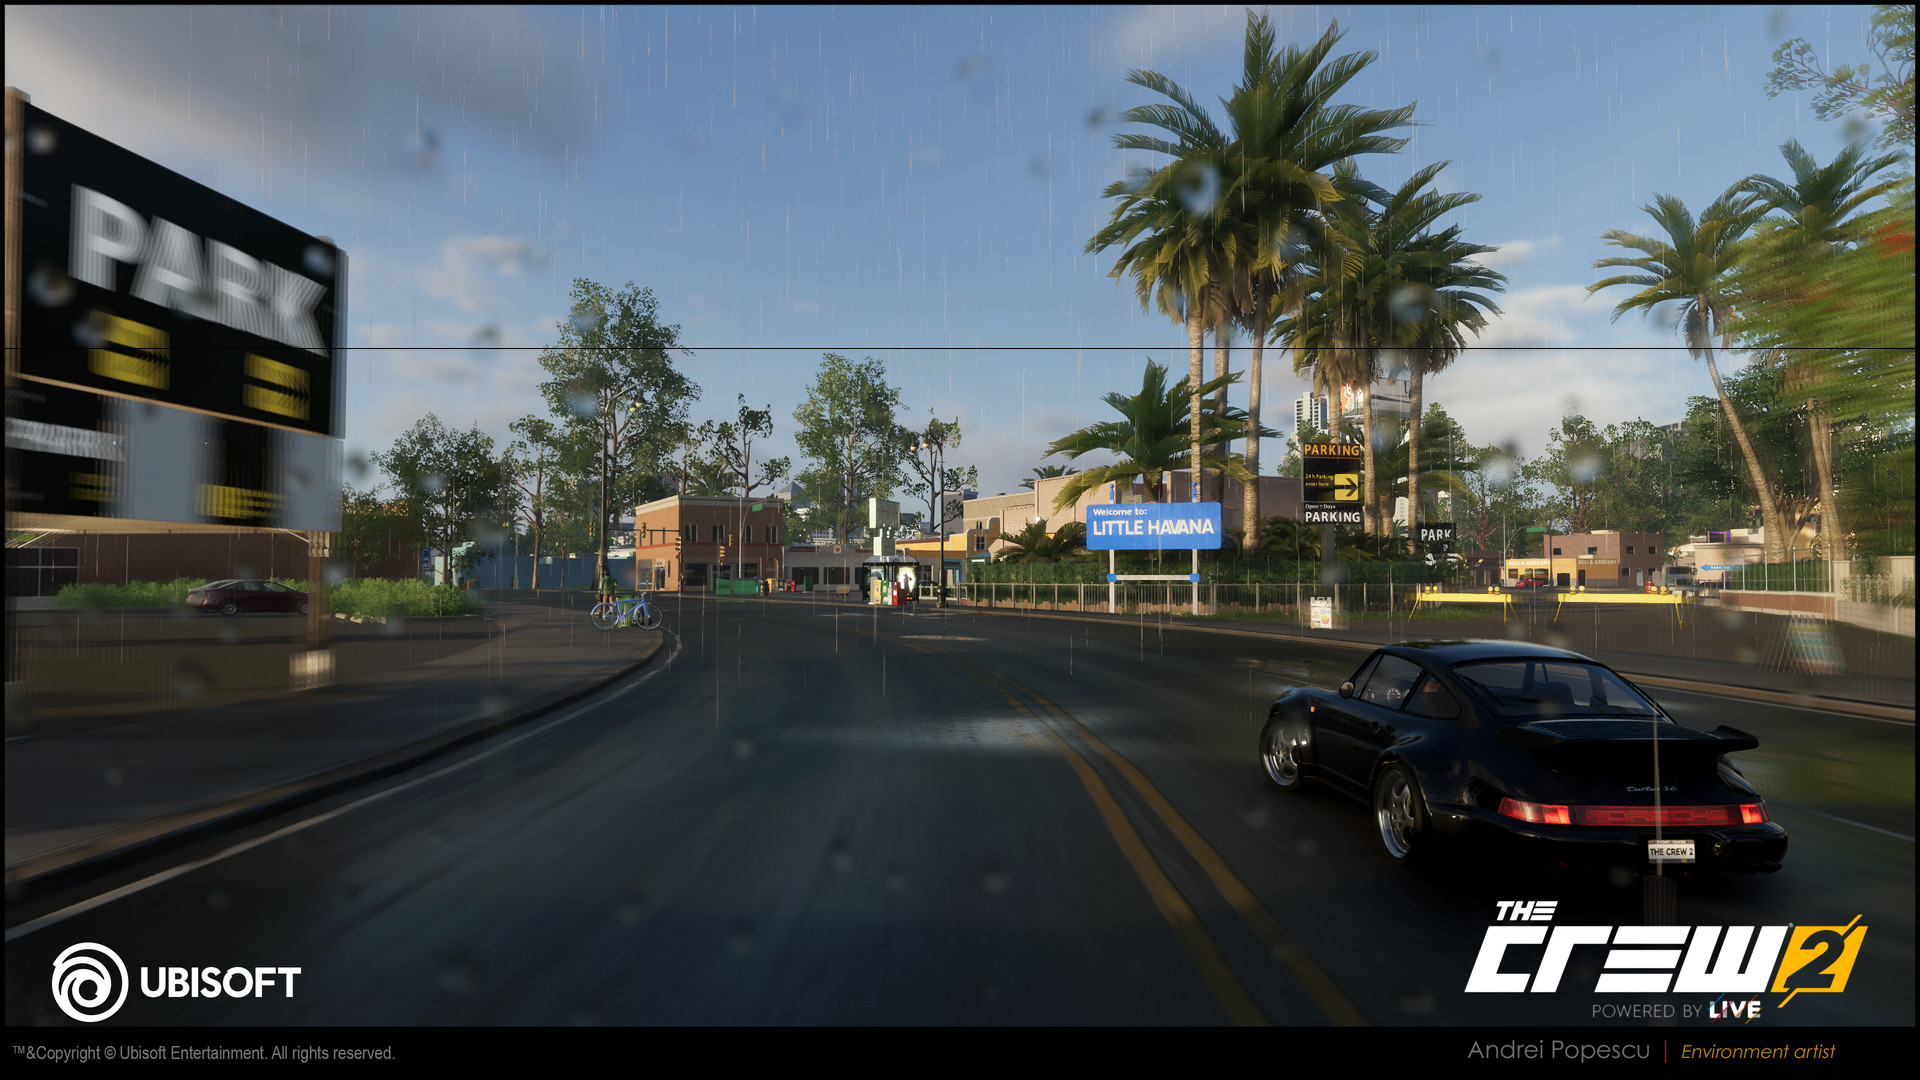 ArtStation - The Crew 2 - Miami Street Racing Playground and Mission